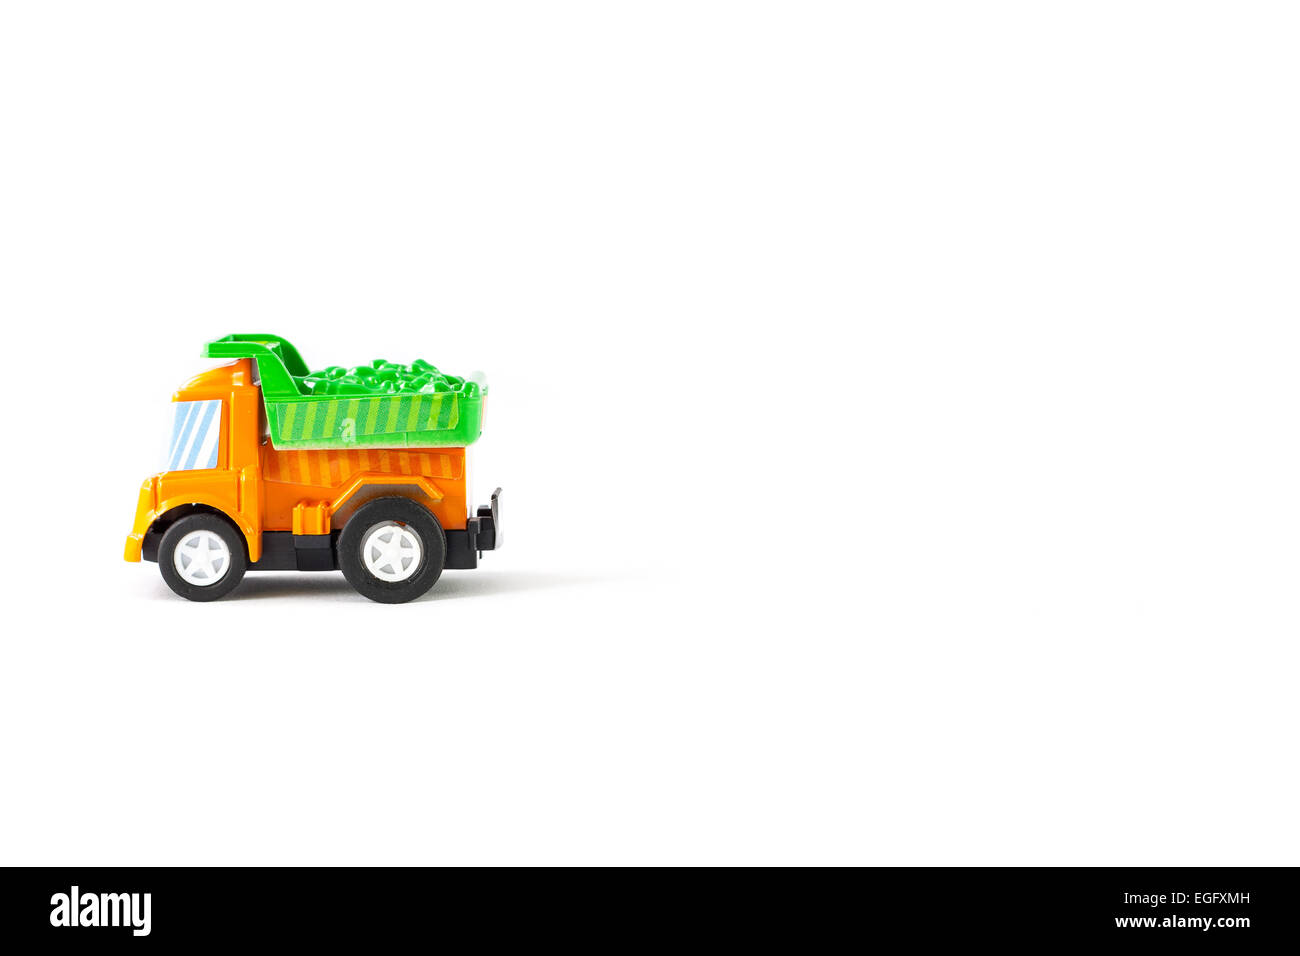 Earth moving toy. Orange and Green truck. - Stock Image